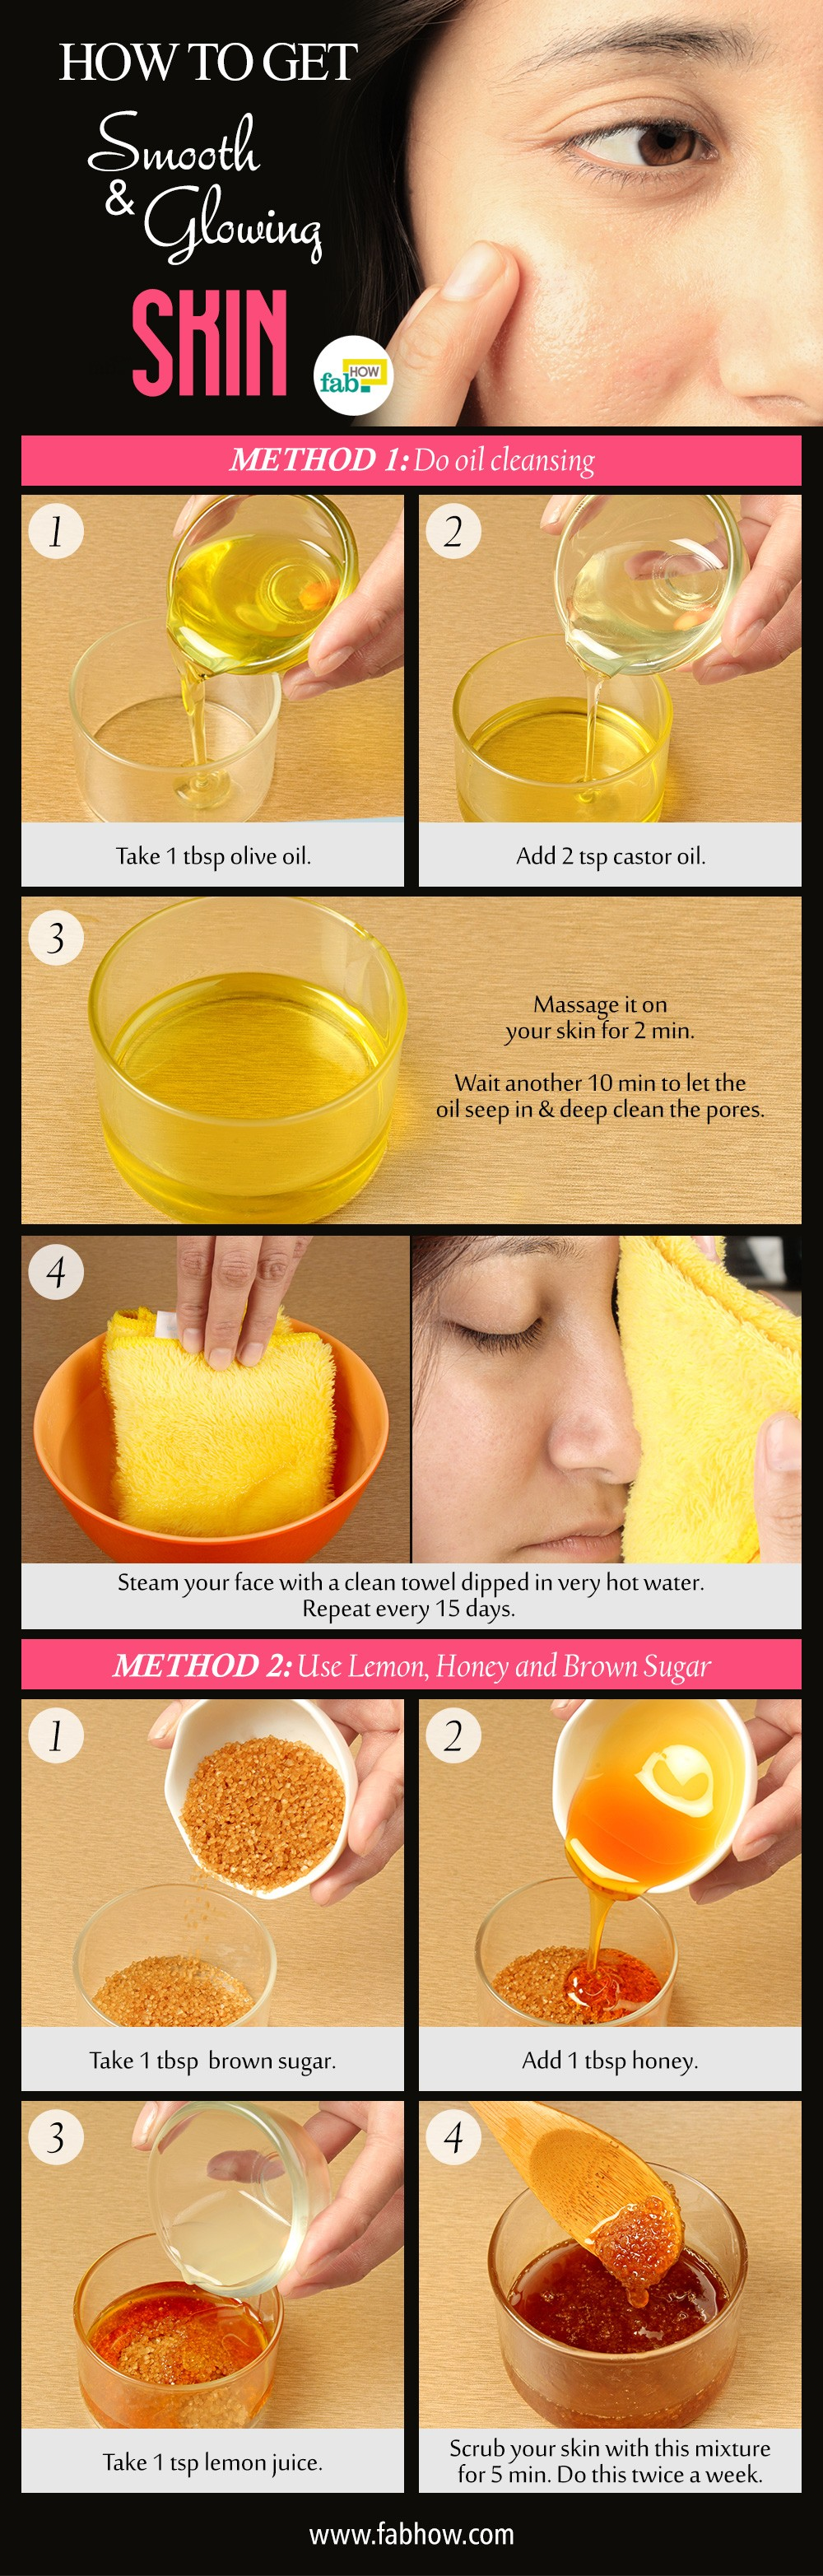 How to Get Smooth, Clear and Glowing Skin in 11 Minutes  Fab How